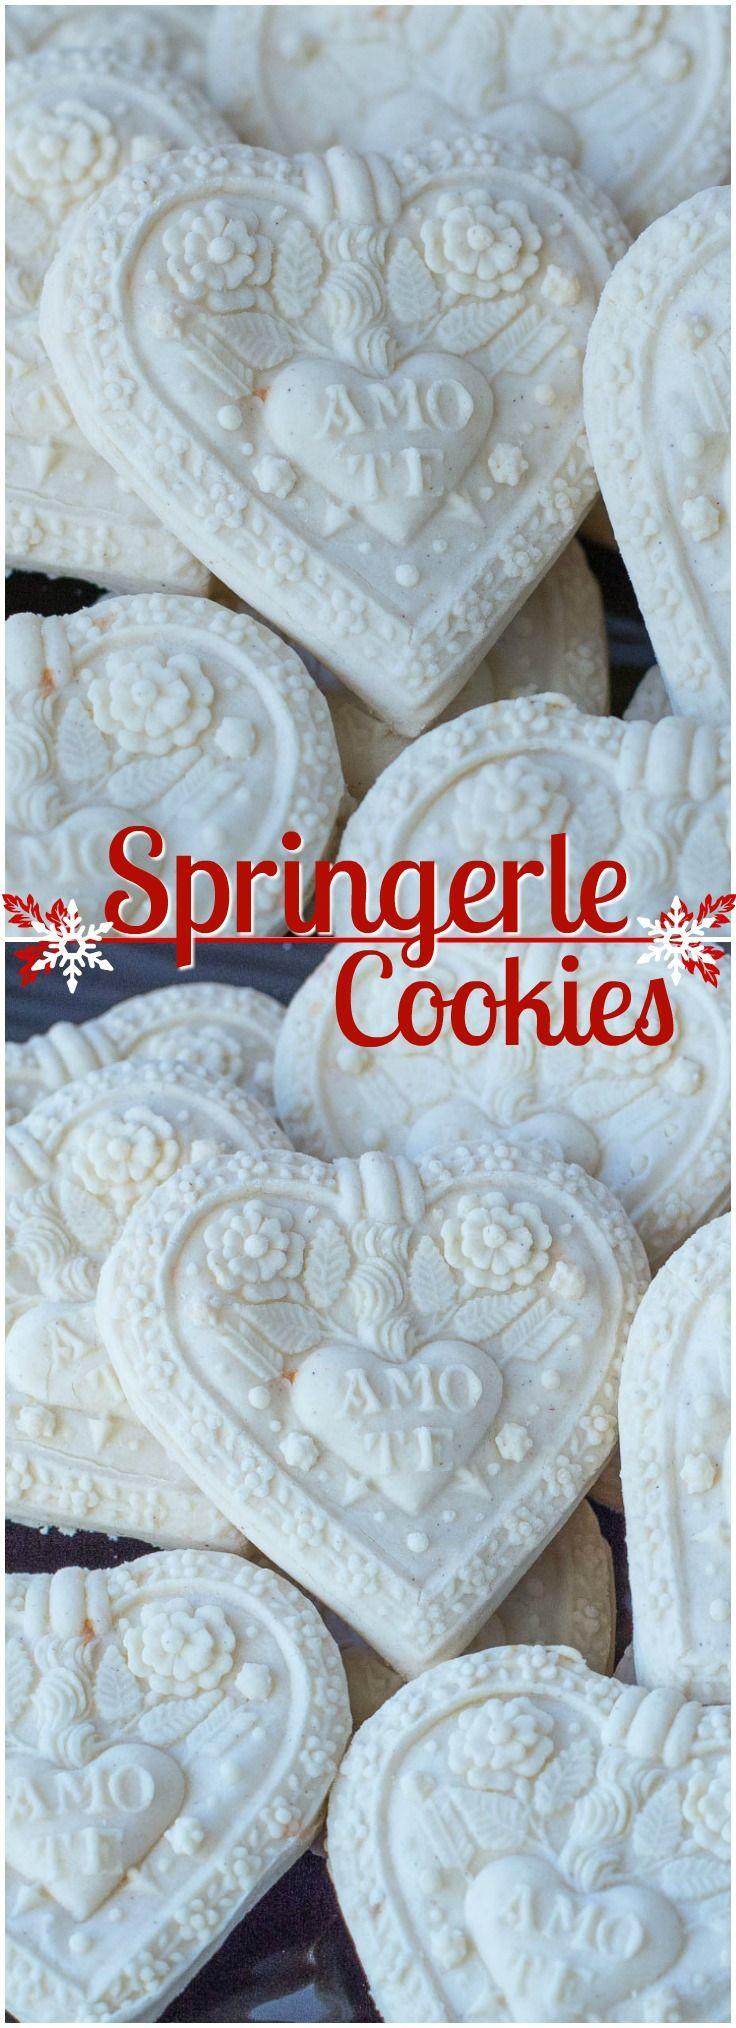 Terrific recipe for beautiful Springerle Cookies. Exquisite cookies that look like pieces of art on the plate.